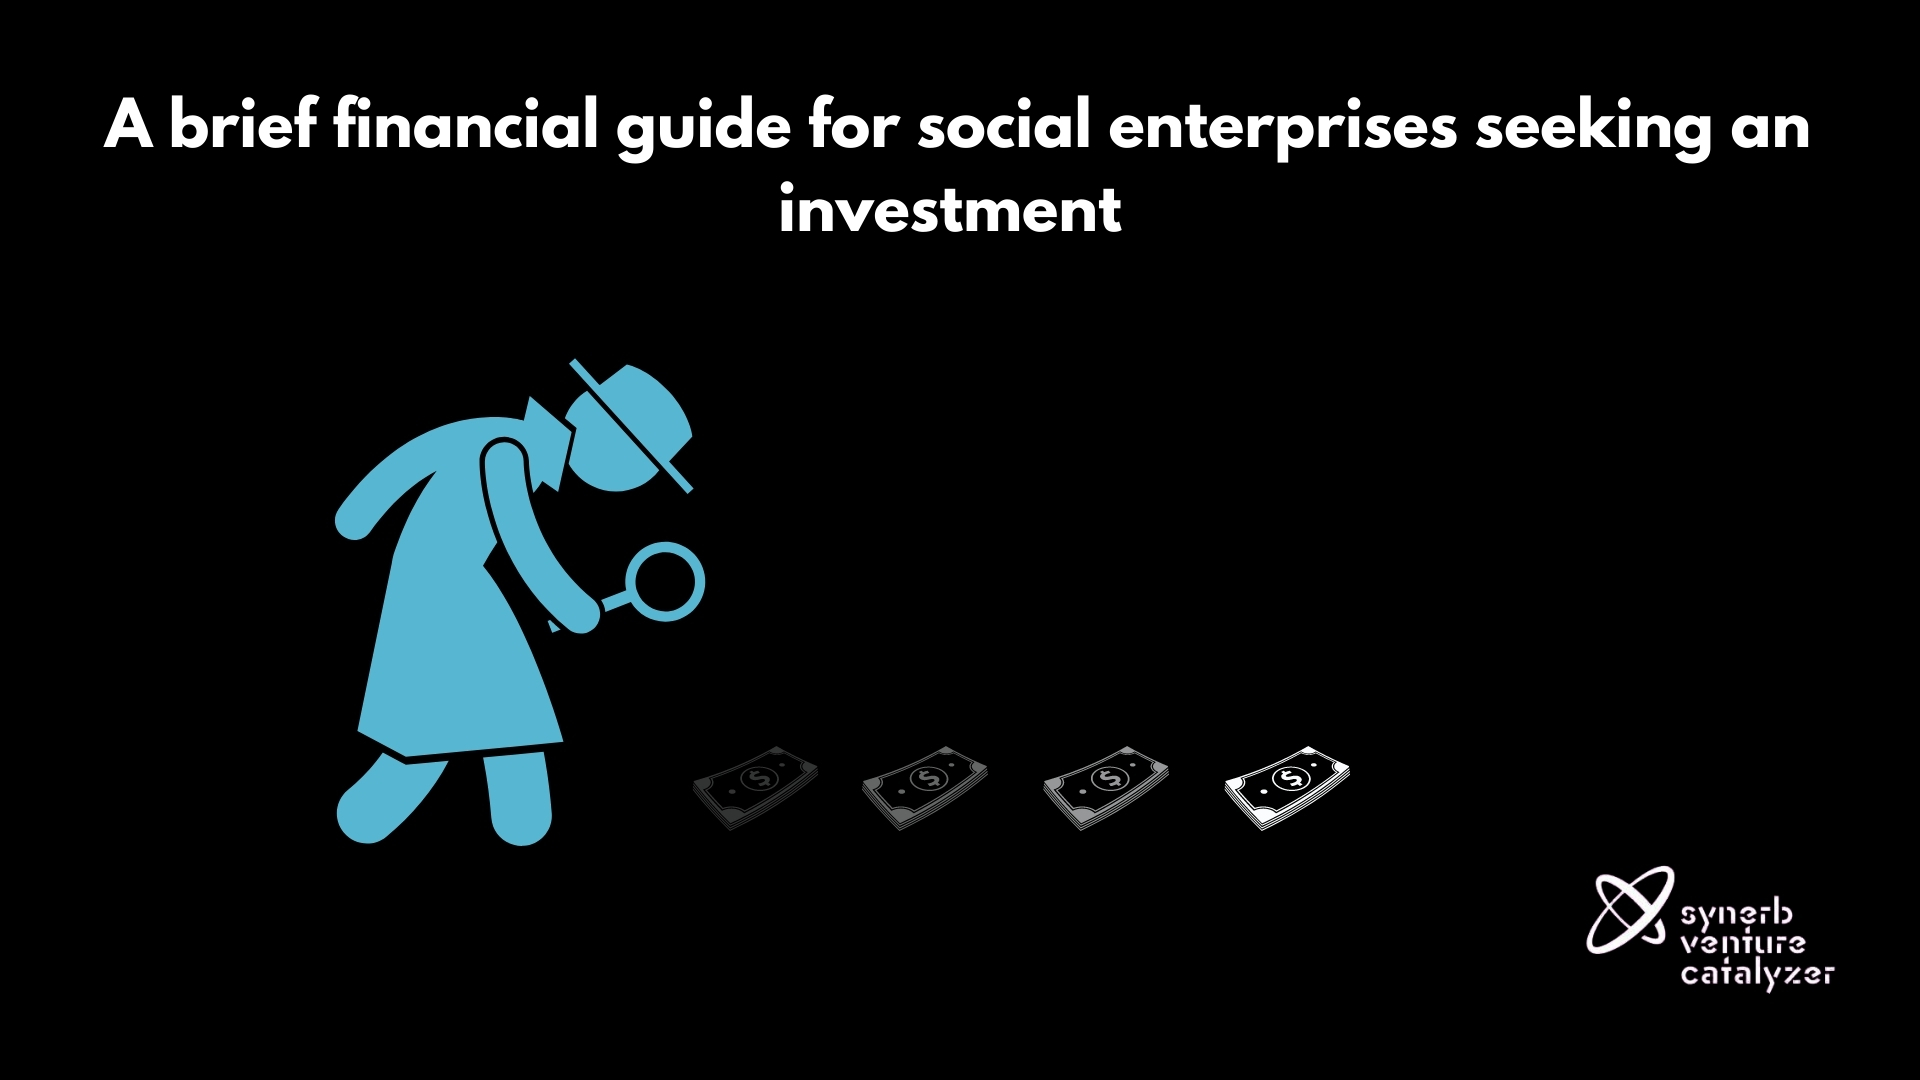 Financial guide social enterprises investment Synerb